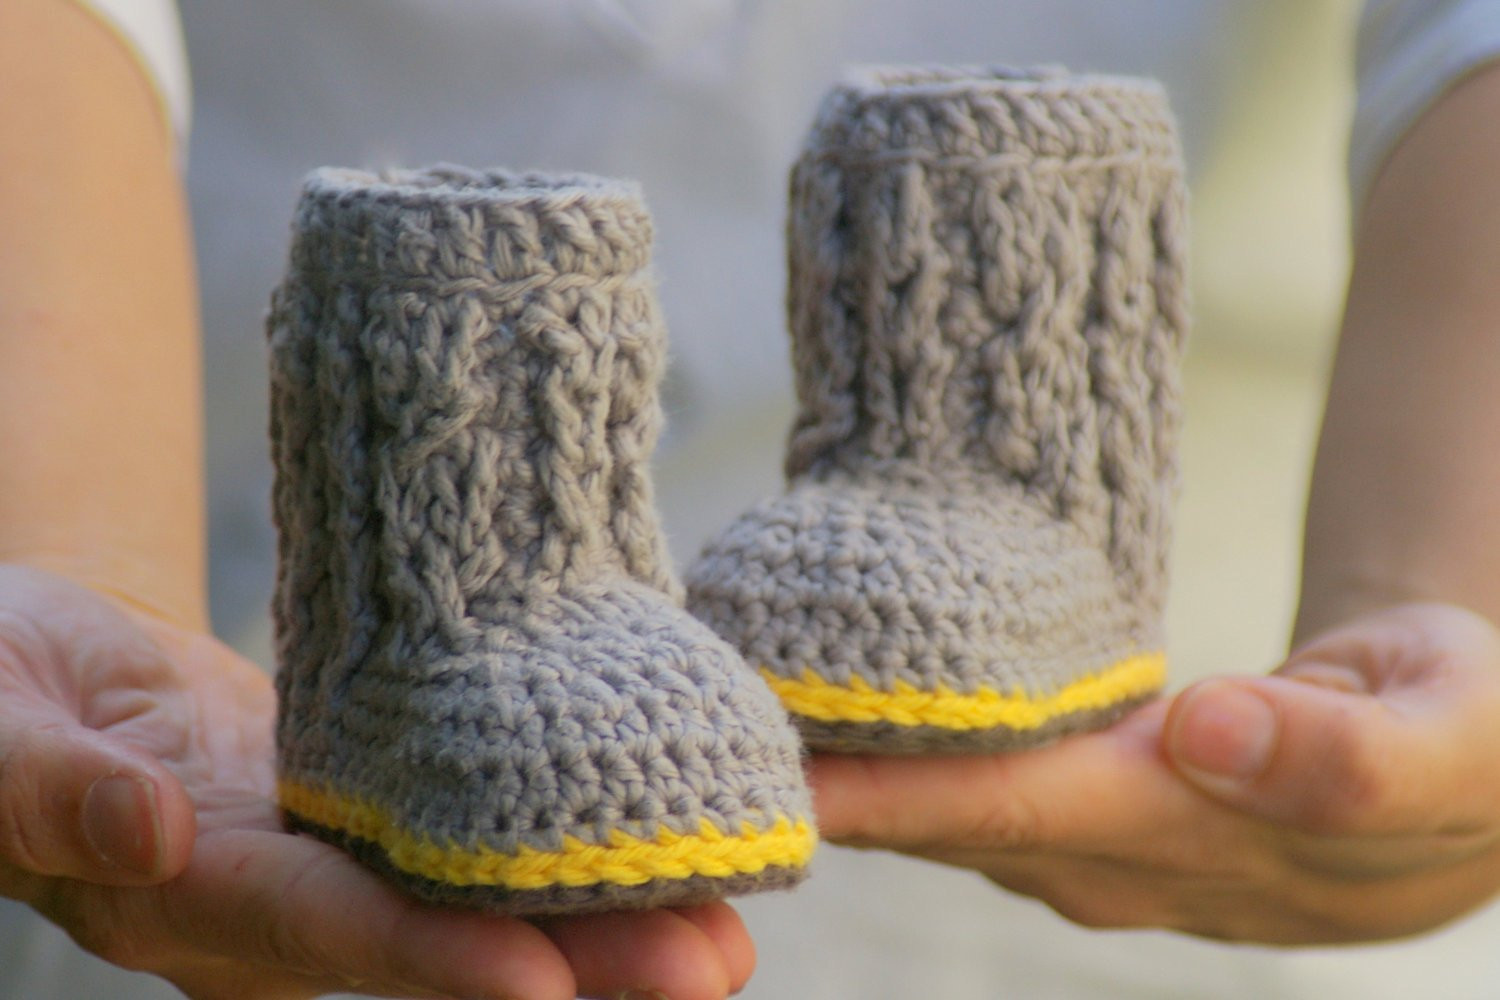 Free Crochet Patterns for Baby Booties Inspirational Baby Booties Crochet Pattern for Cable Boots Pattern Number Of Luxury 40 Pictures Free Crochet Patterns for Baby Booties